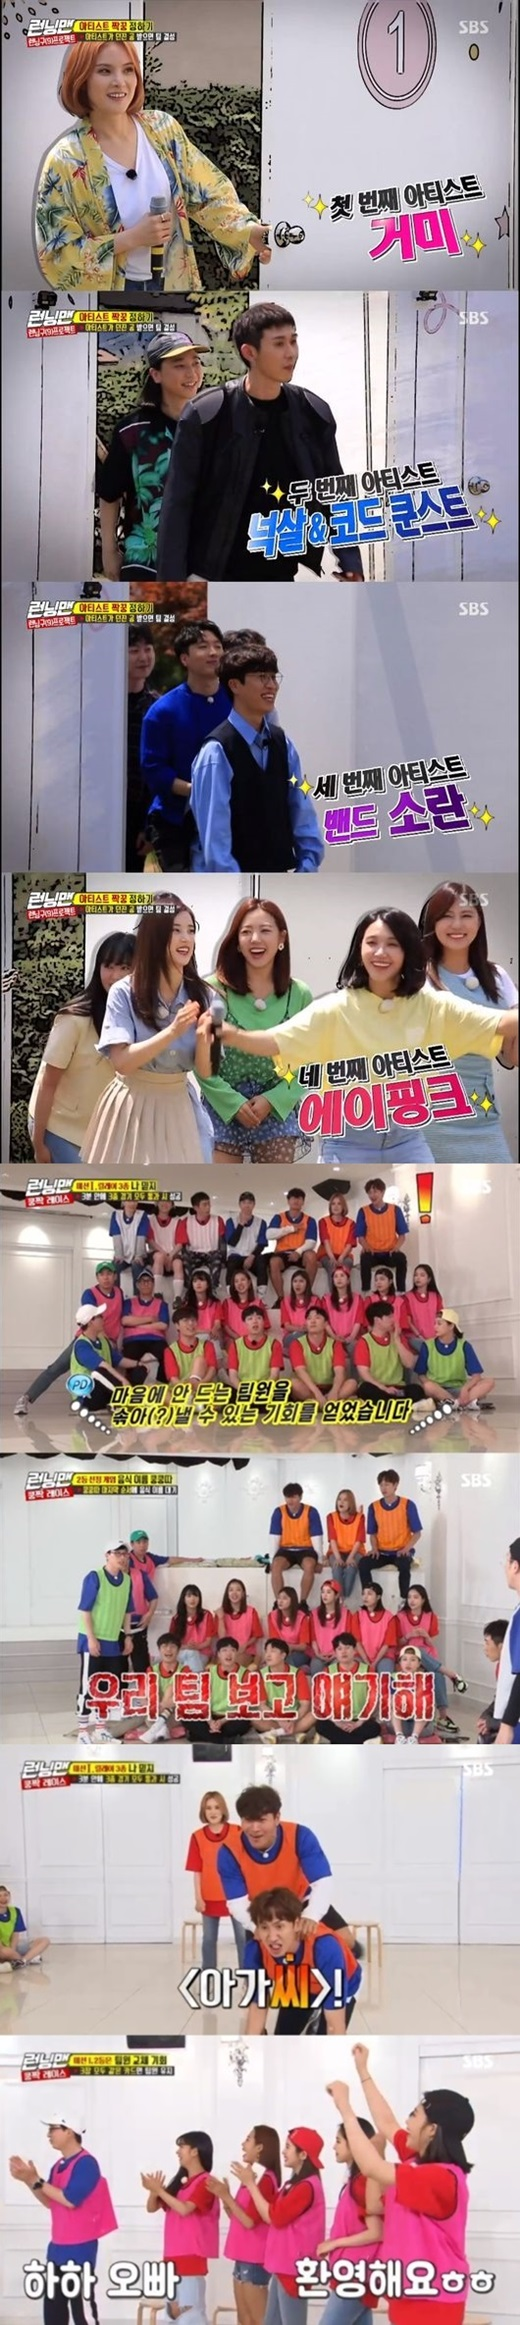 <p>Viewership survey Agency Nielsen Korea, according to last 7 broadcast of 'Running Man'is per minute, with a maximum application rate of 8. 7% soared, and the main advertising officials of the important indicators of '2049 target audience'is 4%(NCR furniture viewership Part 2 standard)record by 'the king', 'his ears are donkey ears' etc and same time 1 ranked. Average viewership is part 1 of 4. 9%, Part 2 6. 7%(NCR furniture viewership standards)were.</p><p>This days broadcast of 'running projects'and decorated ahead of example and for members with '9 year anniversary domestic fan meeting'together to the top the artist 4 team blitz was unveiled. Artists Team 1 and Team Member 2 people pair have had, 'OST Queen' The Spider first appeared to Kim Jong Kook and Lee Kwang-Soo paired with were.</p><p>Four arrows&Code Kunst that Song JI Hyo X to to and breathing to align, and lets band fuss Yoo Jae-Suk X-min, girl group Apink with seat with X amount more as well and even were. Especially, knocked the arrow and Song JI Hyo, 'look-a-like', to the topic I was to be as much as a greater laugh, I found myself in.</p><p>1 car paired Peek-A-Boo for the middle, total 3 round Battle to the true 'kung shimmering lace'Decorated was. The final keeps the team collaborated as a team on stage could, and all teams concede without a Battle, and it unfolded. The first Battle in Spider X Kim Jong Kook X Lee Kwang-Soo team # 1 to team members did not change, but 2 for Apink X analysis with X amount more as Team comments dont fit the team change happened. After Yoo Jae-Suk X to to Apink paired with was, and this scene is the best viewership 8. 7% 'Best 1 minute'is accounted for.</p><p>Next week broadcast in collaboration of the race, the final results will be.</p>